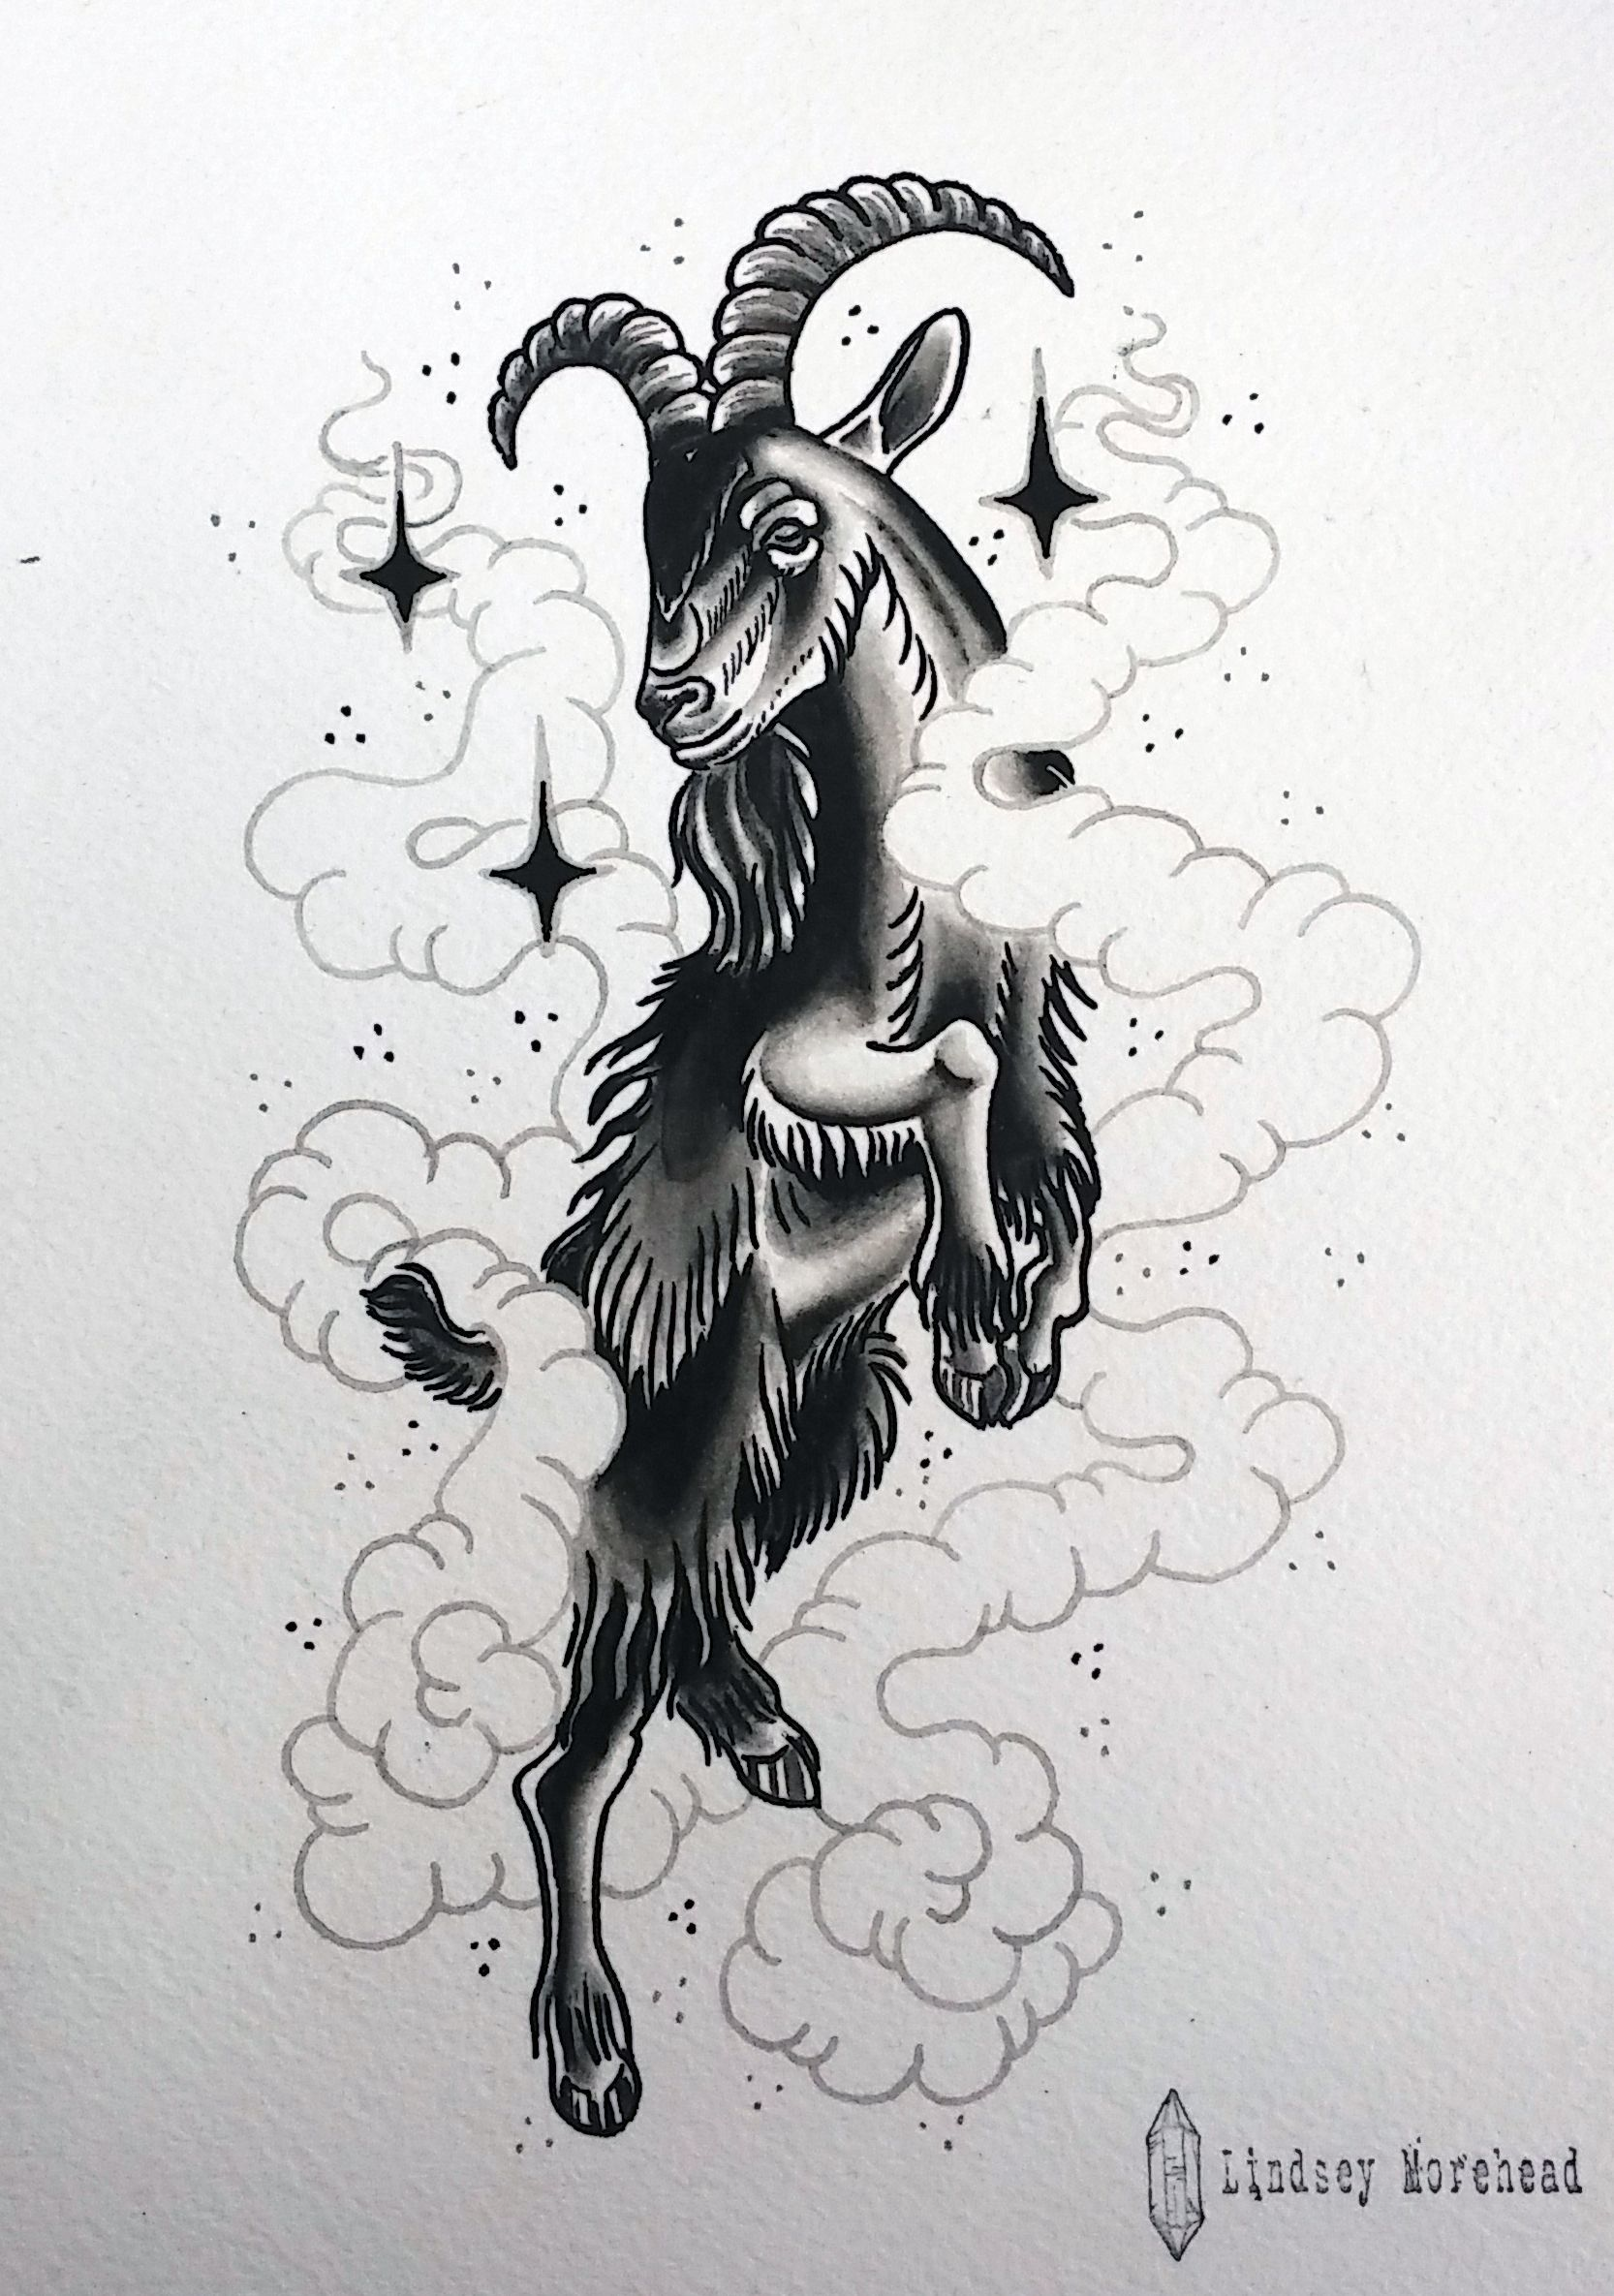 Wouldst Thou Like To Live Deliciously Black Phillip The Vvitch Tattoo Flash By Lindsey Morehead At Donovan S Autumn Moon Tattoo Black Art Tattoo Tattoos Capricorn Tattoo